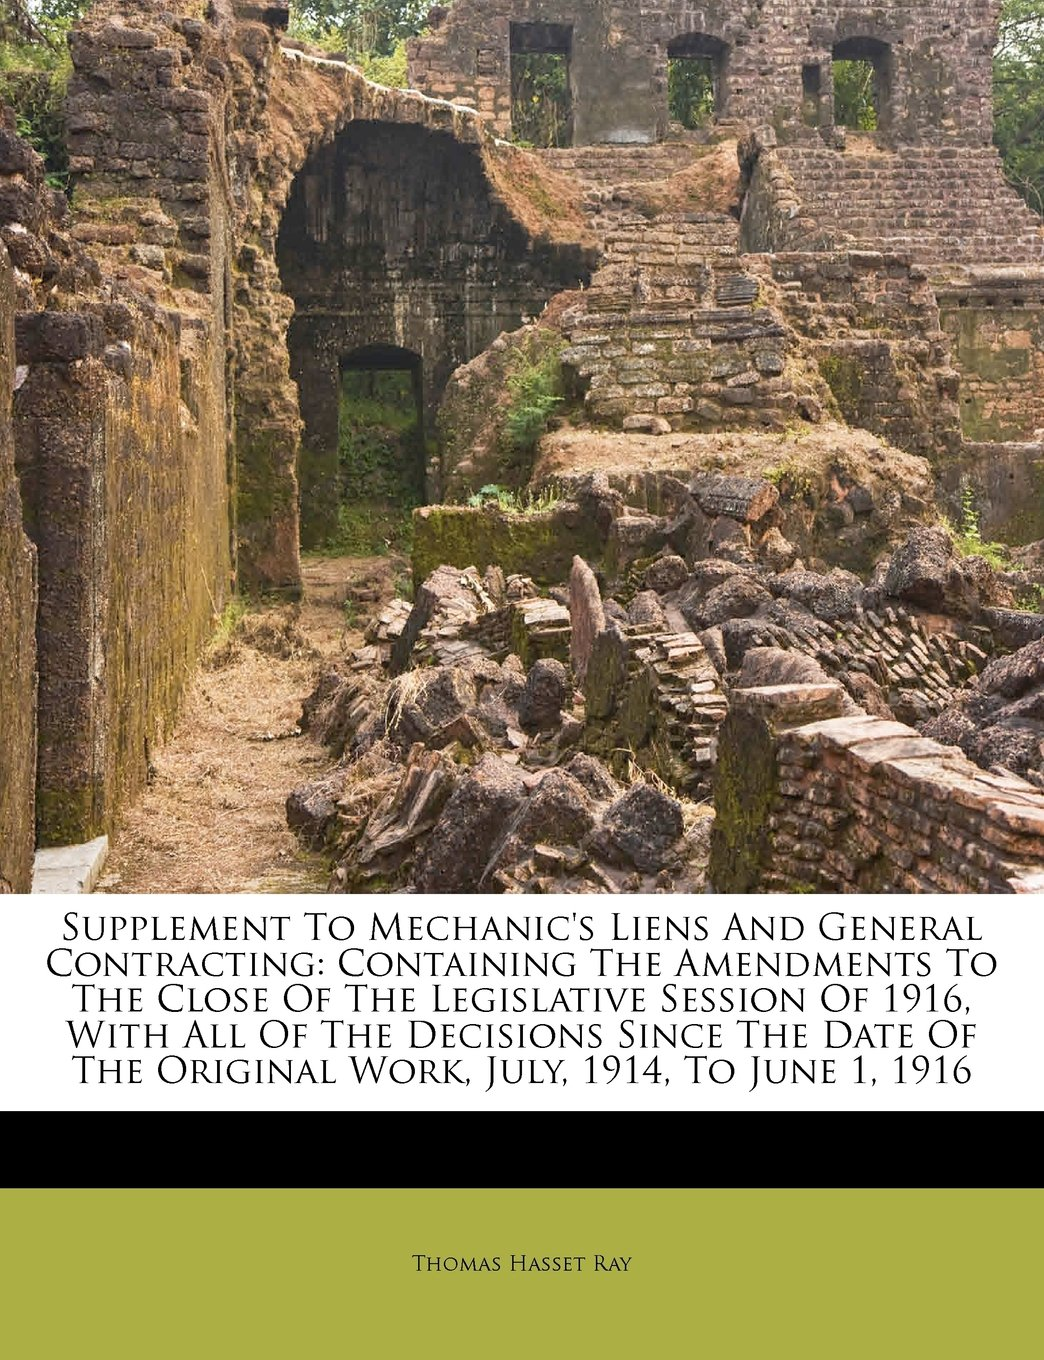 Supplement To Mechanic's Liens And General Contracting: Containing The Amendments To The Close Of The Legislative Session Of 1916, With All Of The ... Original Work, July, 1914, To June 1, 1916 PDF